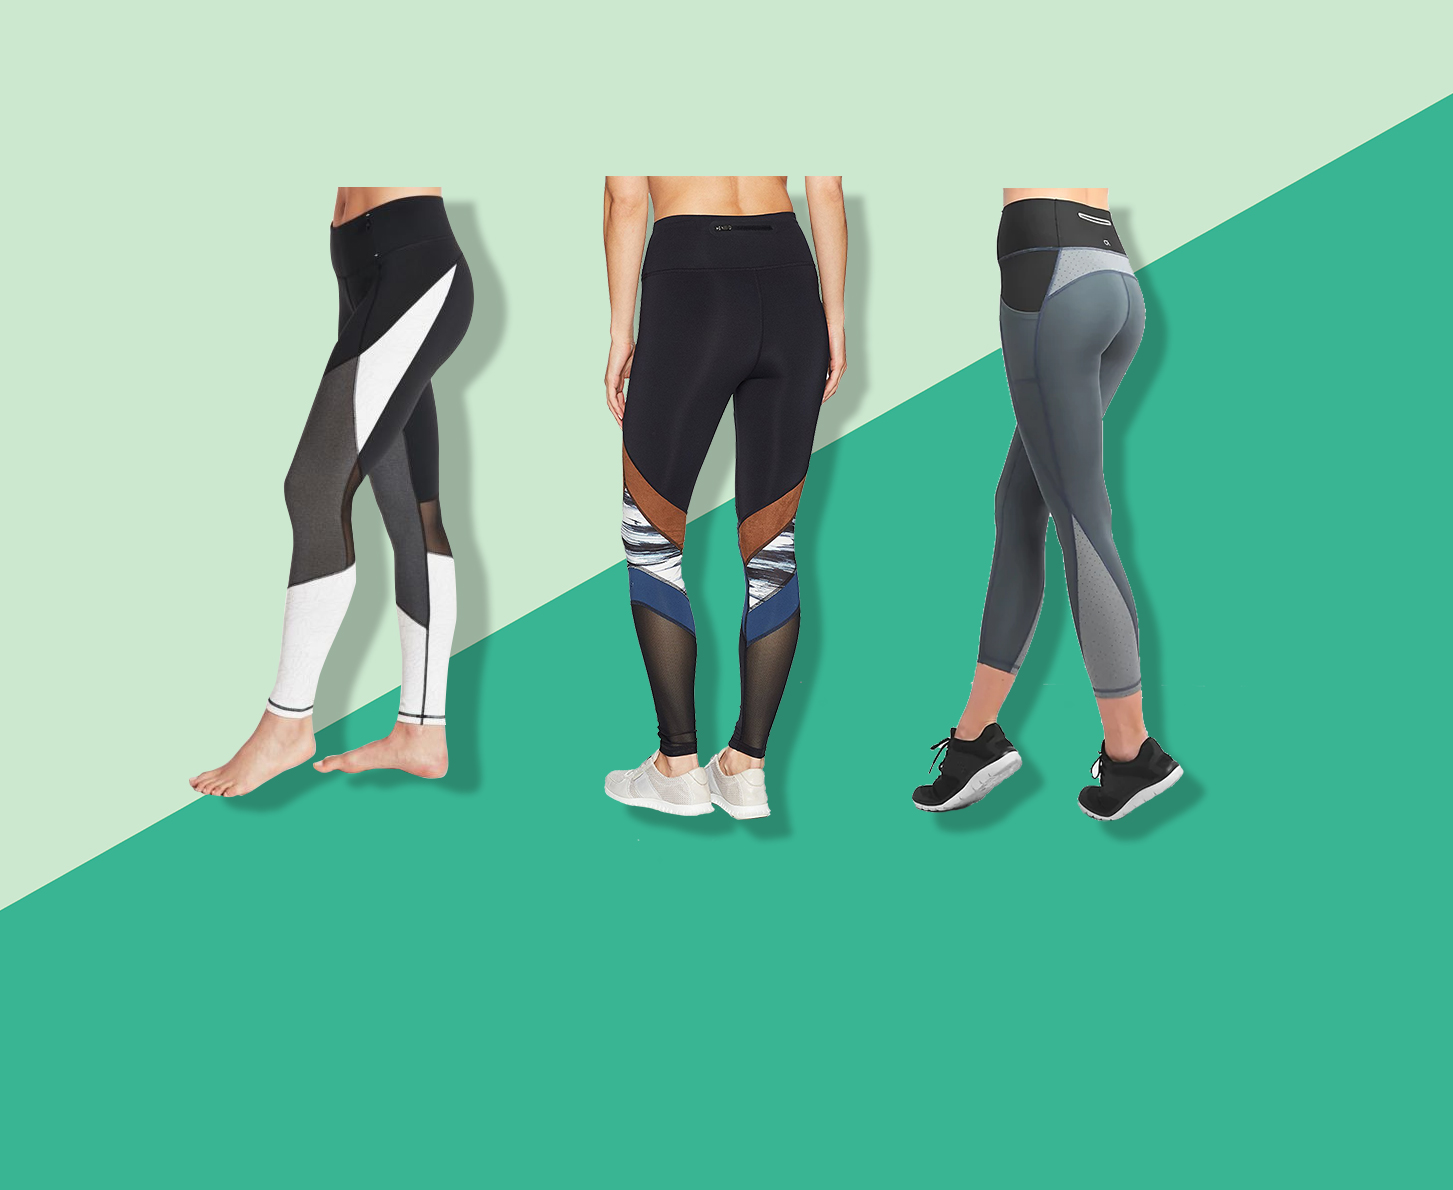 The 7 Best Workout Leggings With Pockets